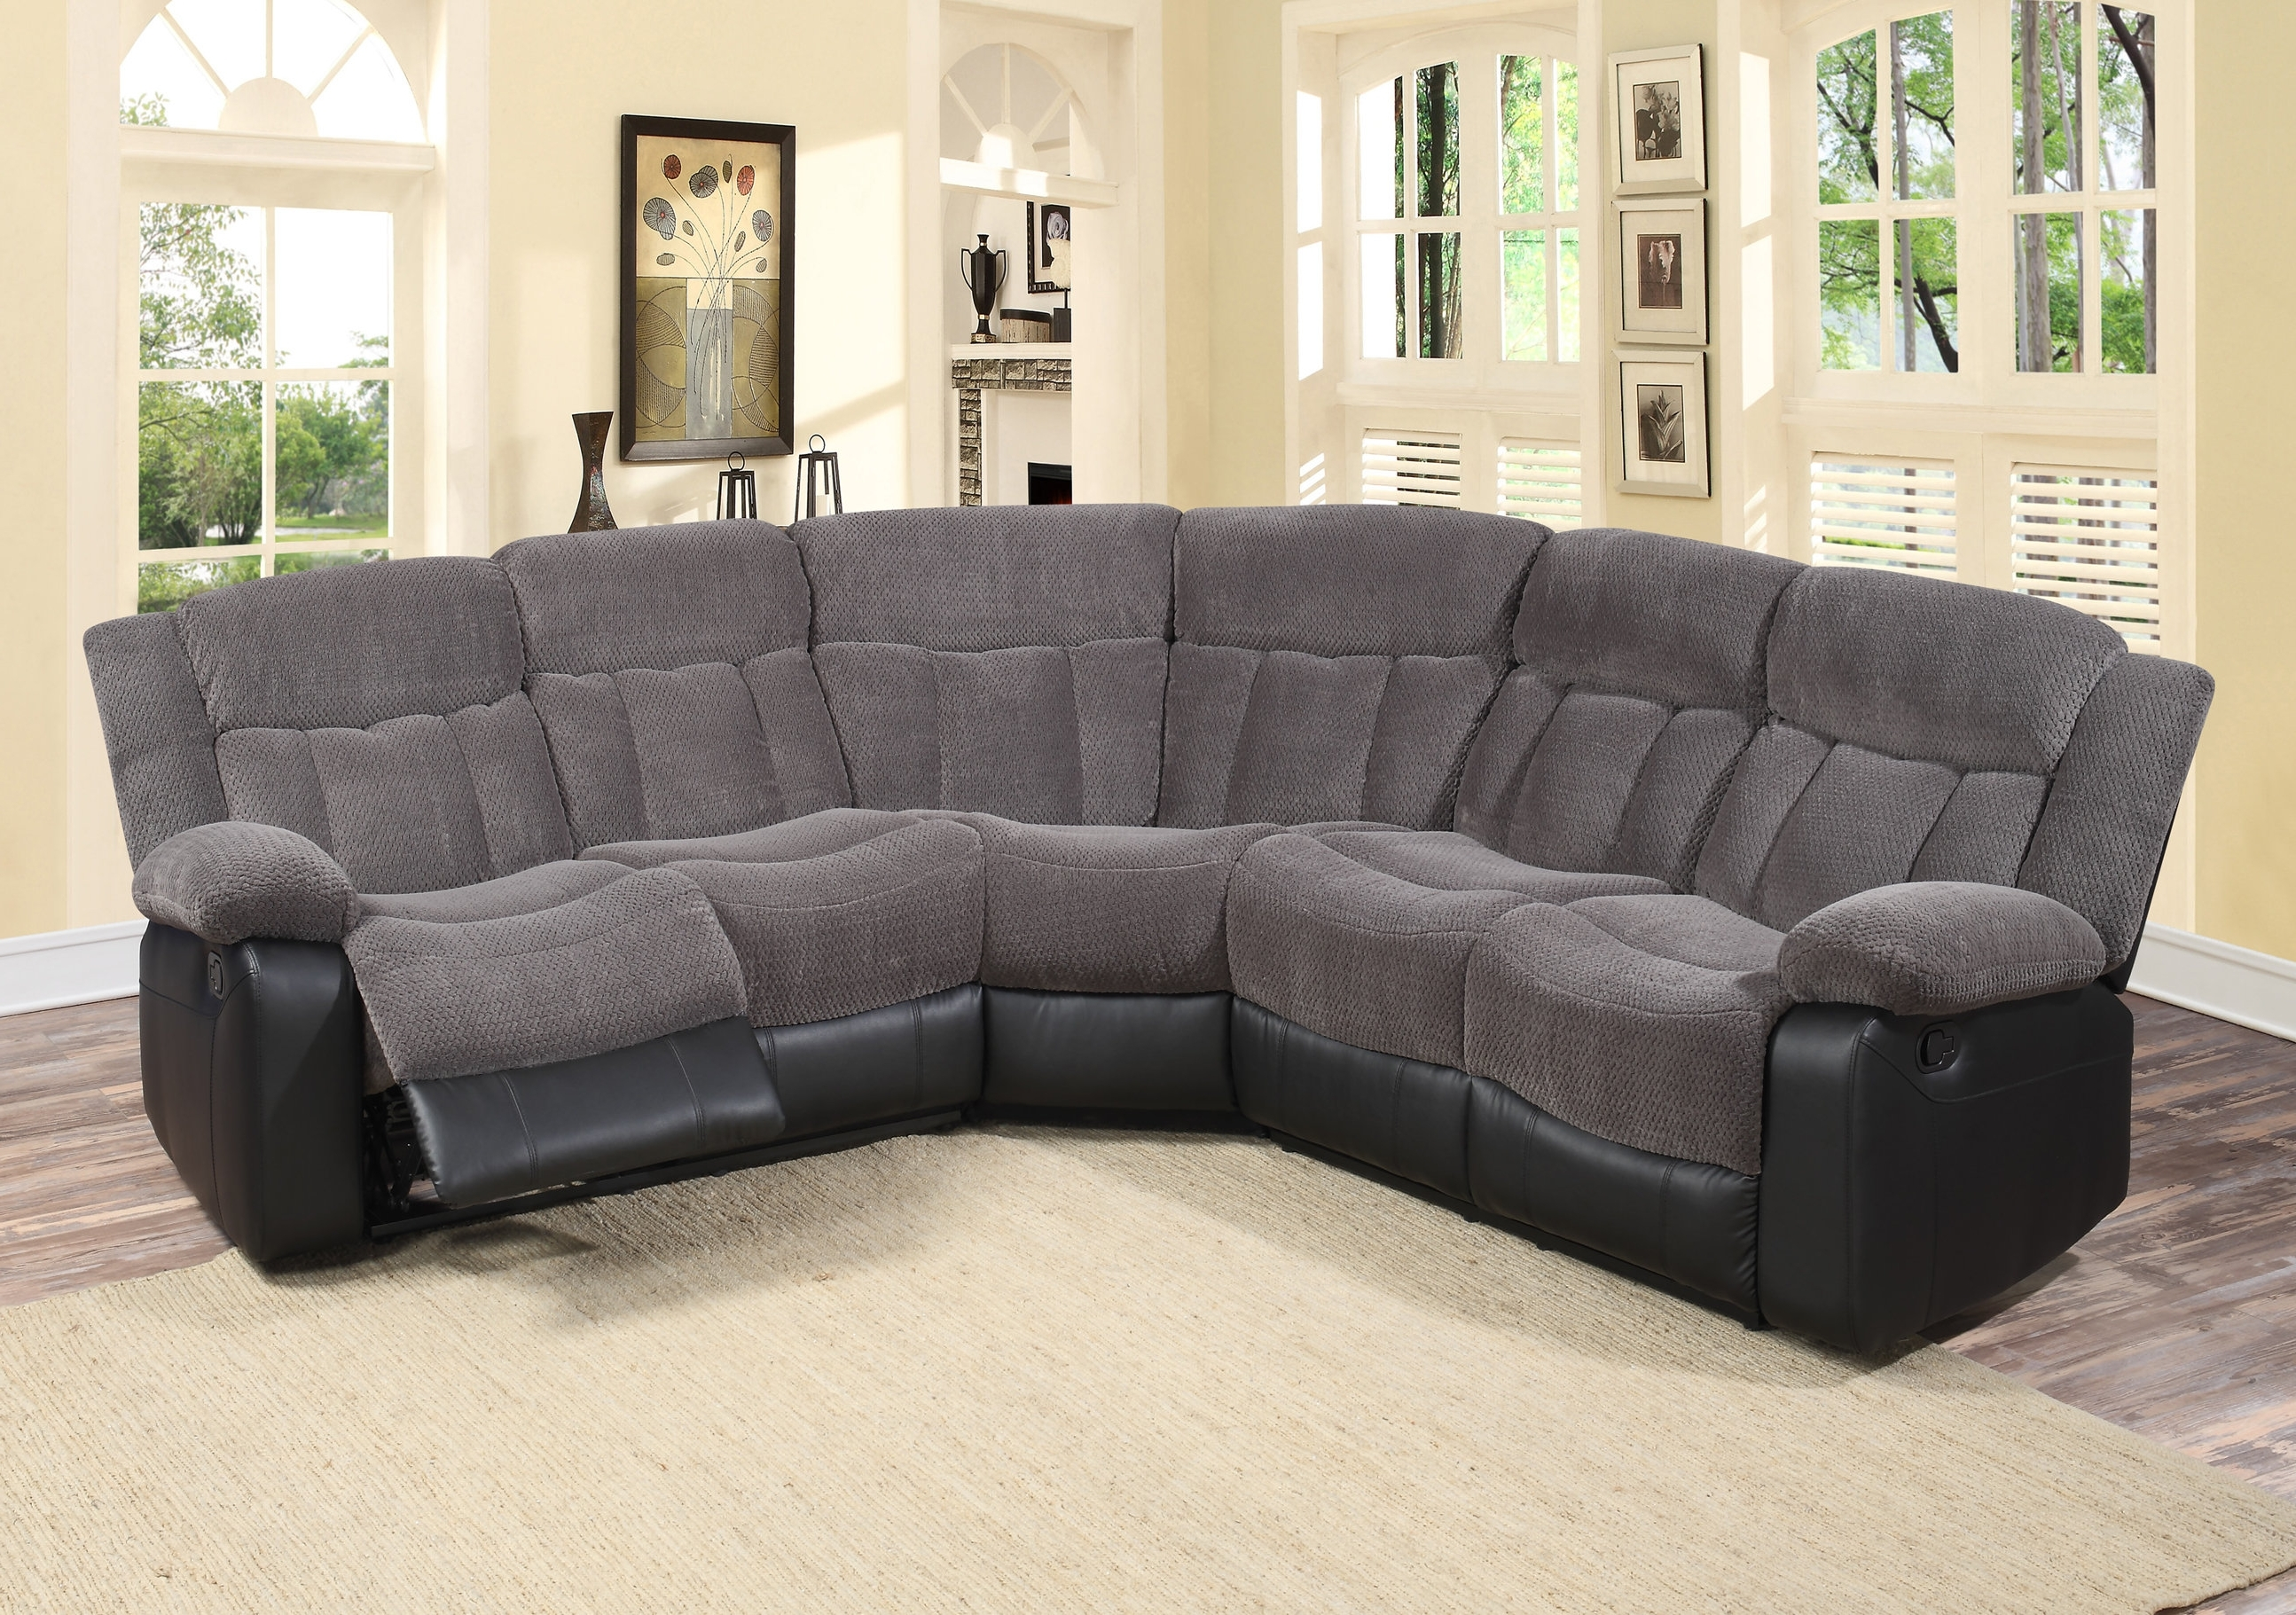 Wayfair Within Sectional Couches With Recliner And Chaise (View 13 of 15)